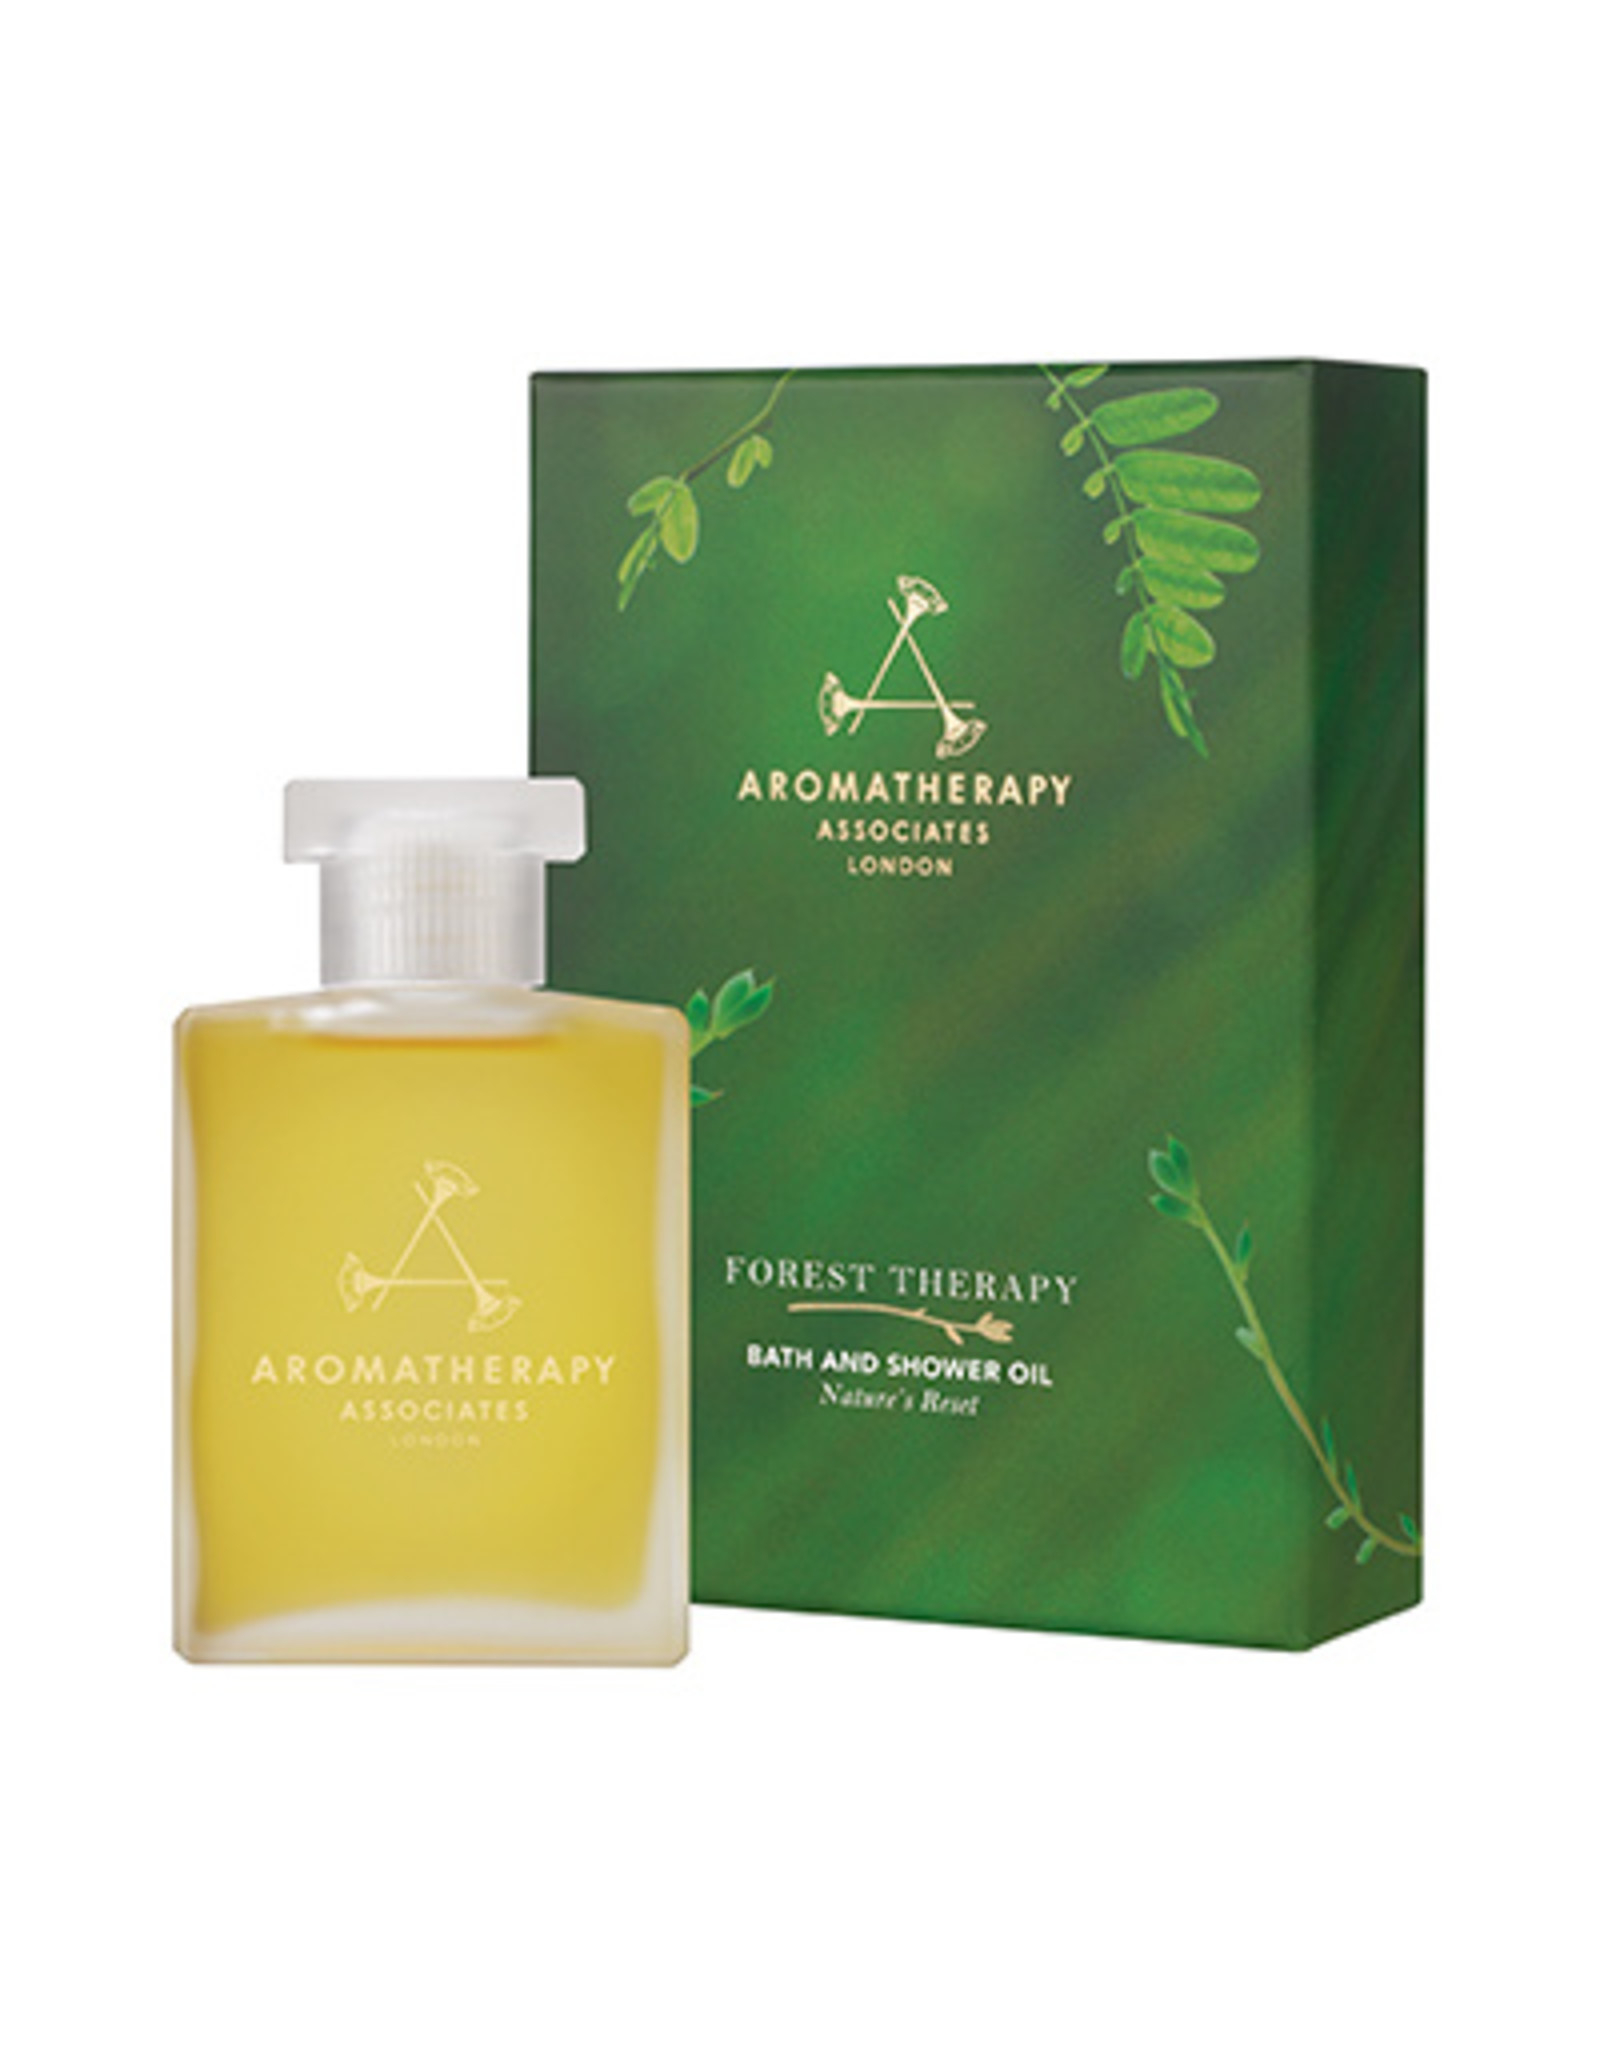 Aromatherapy Forest Therapy Bath and Shower Oil, 55ml